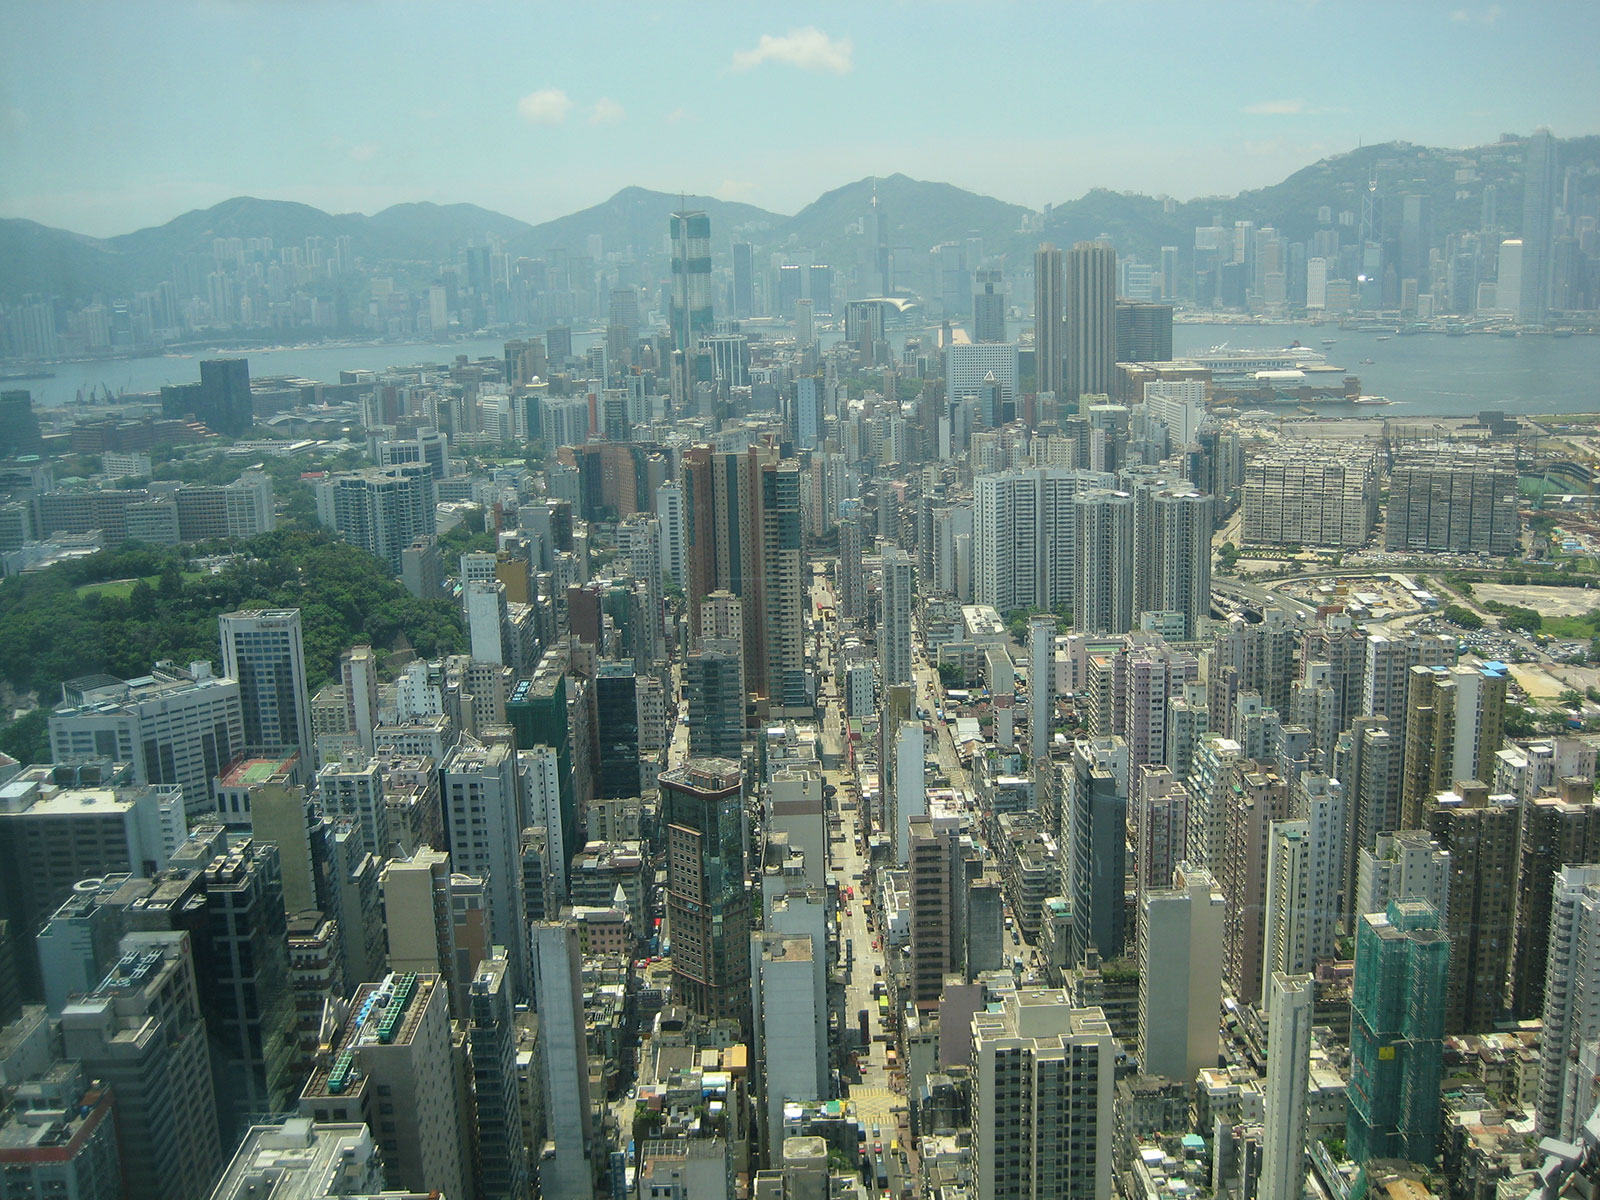 Kowloon and Hong Kong Island seen from the 80th floor of an office building I worked in. Langham Hotel that was.